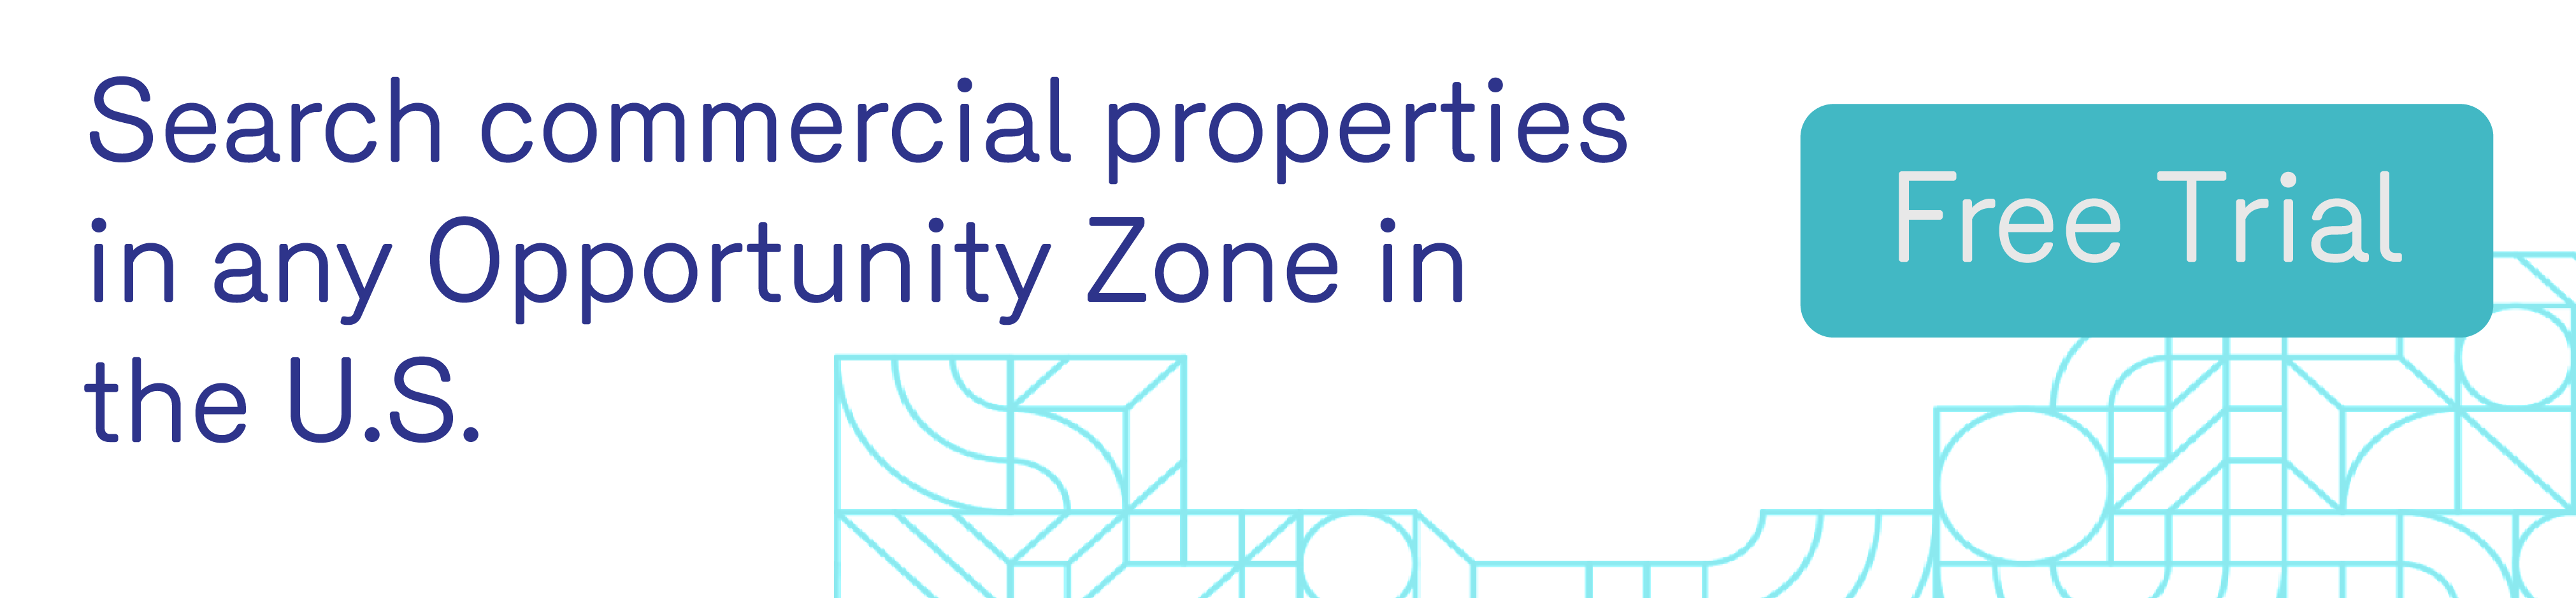 Reonomy Opportunity Zone Search